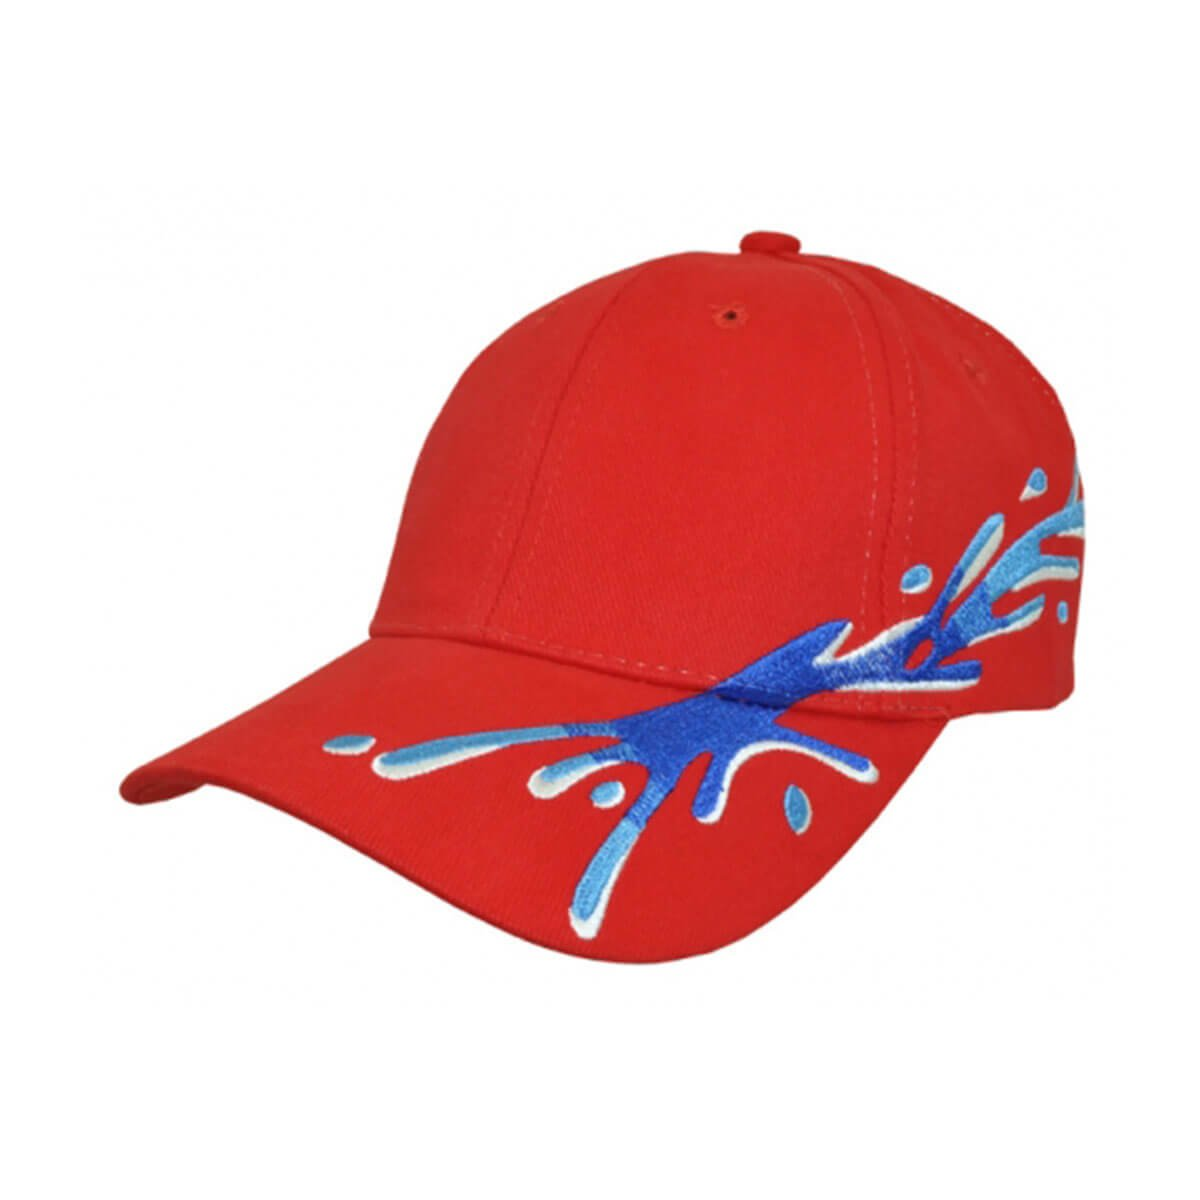 Splash Cap-Red / Royal / Sky / White